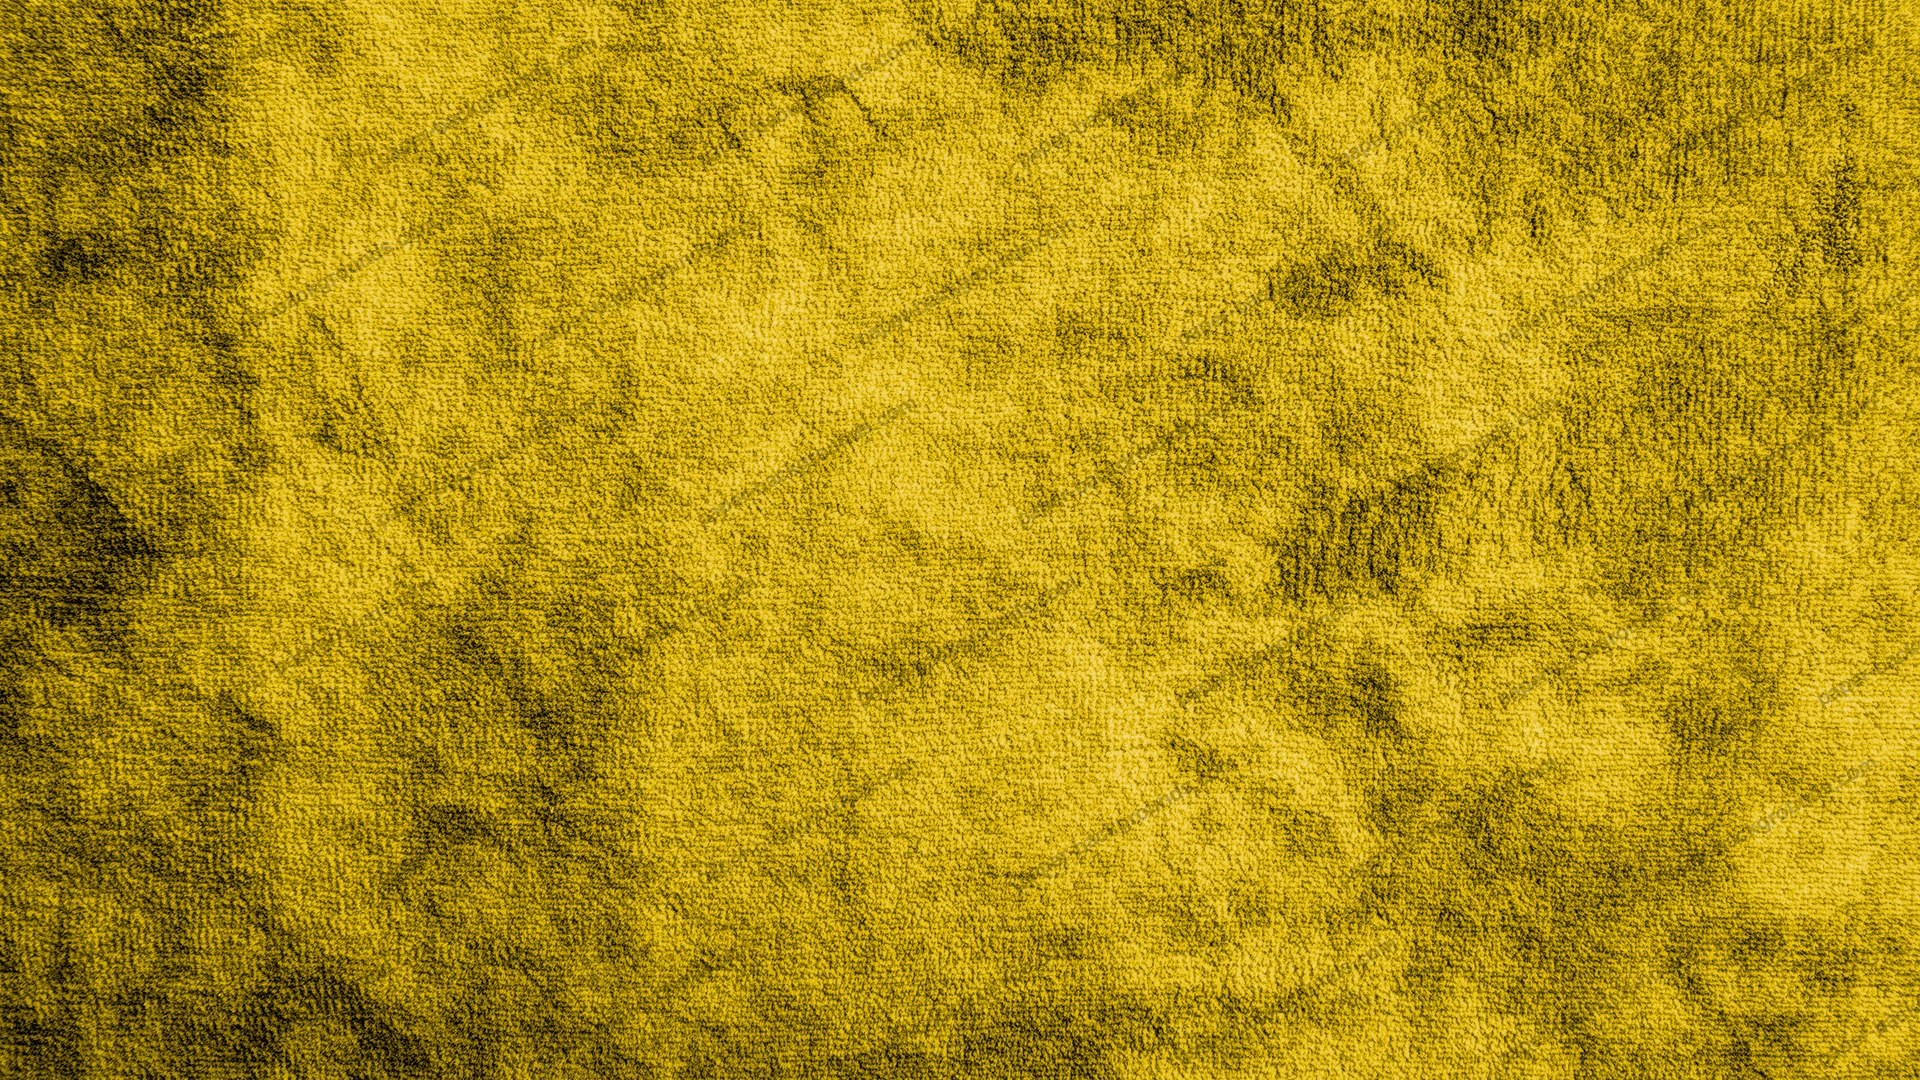 yellow-smooth-carpet-texture-hd